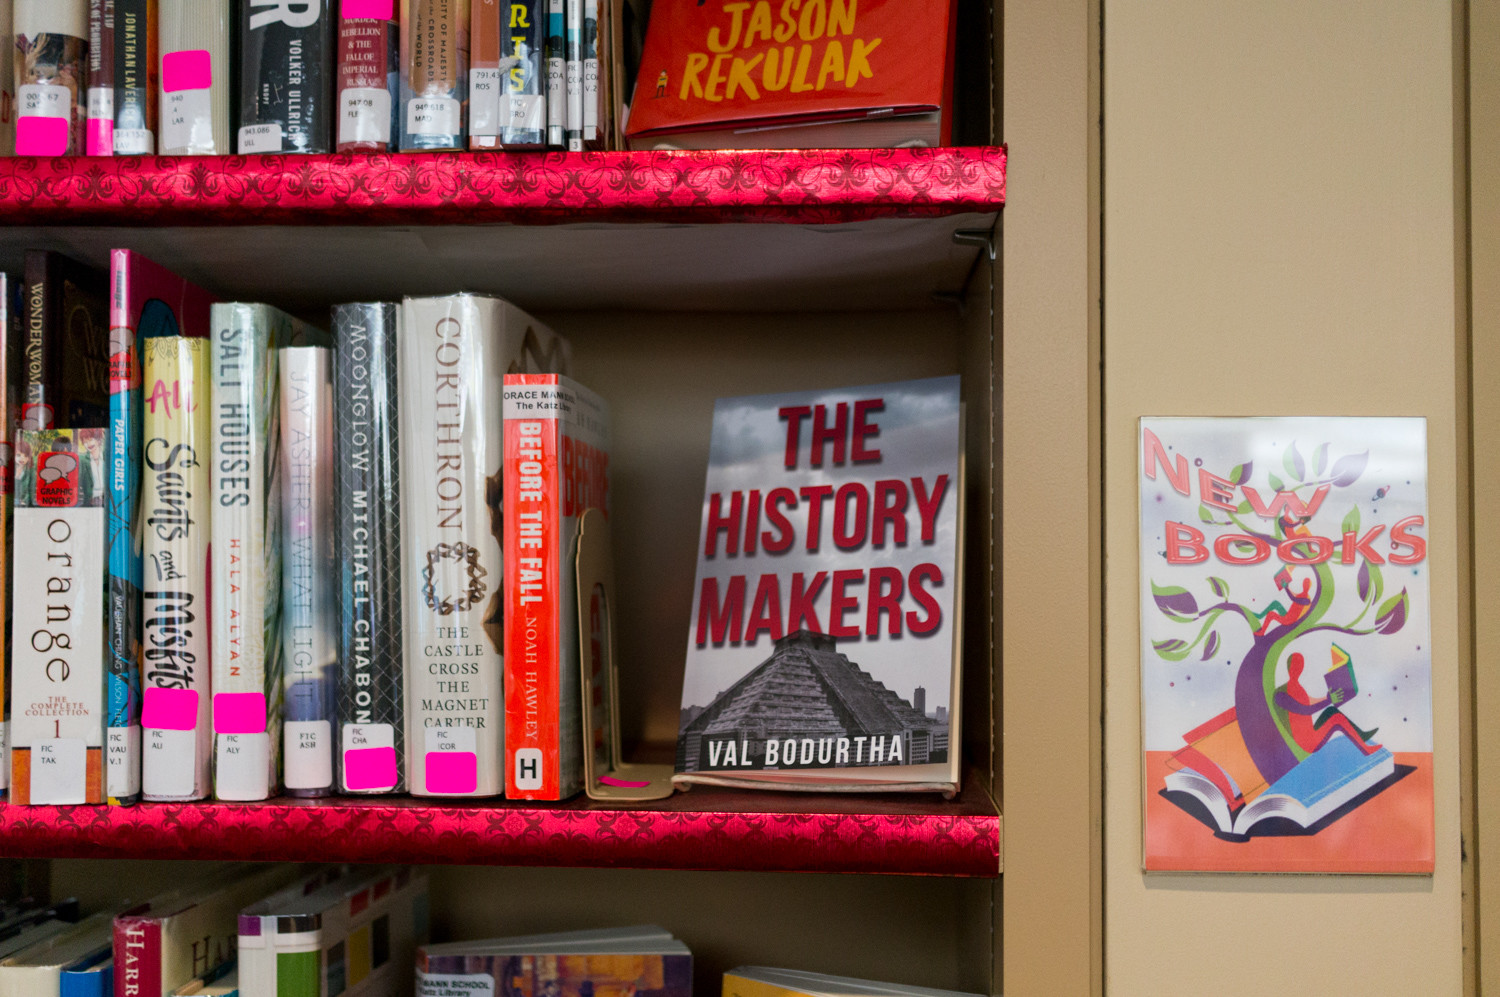 While Val Bodurtha's 'The History Makers' has yet to officially join the catalogue in Horace Mann's library, it will find a home on the new books shelf and later in the sci-fi and fantasy section.